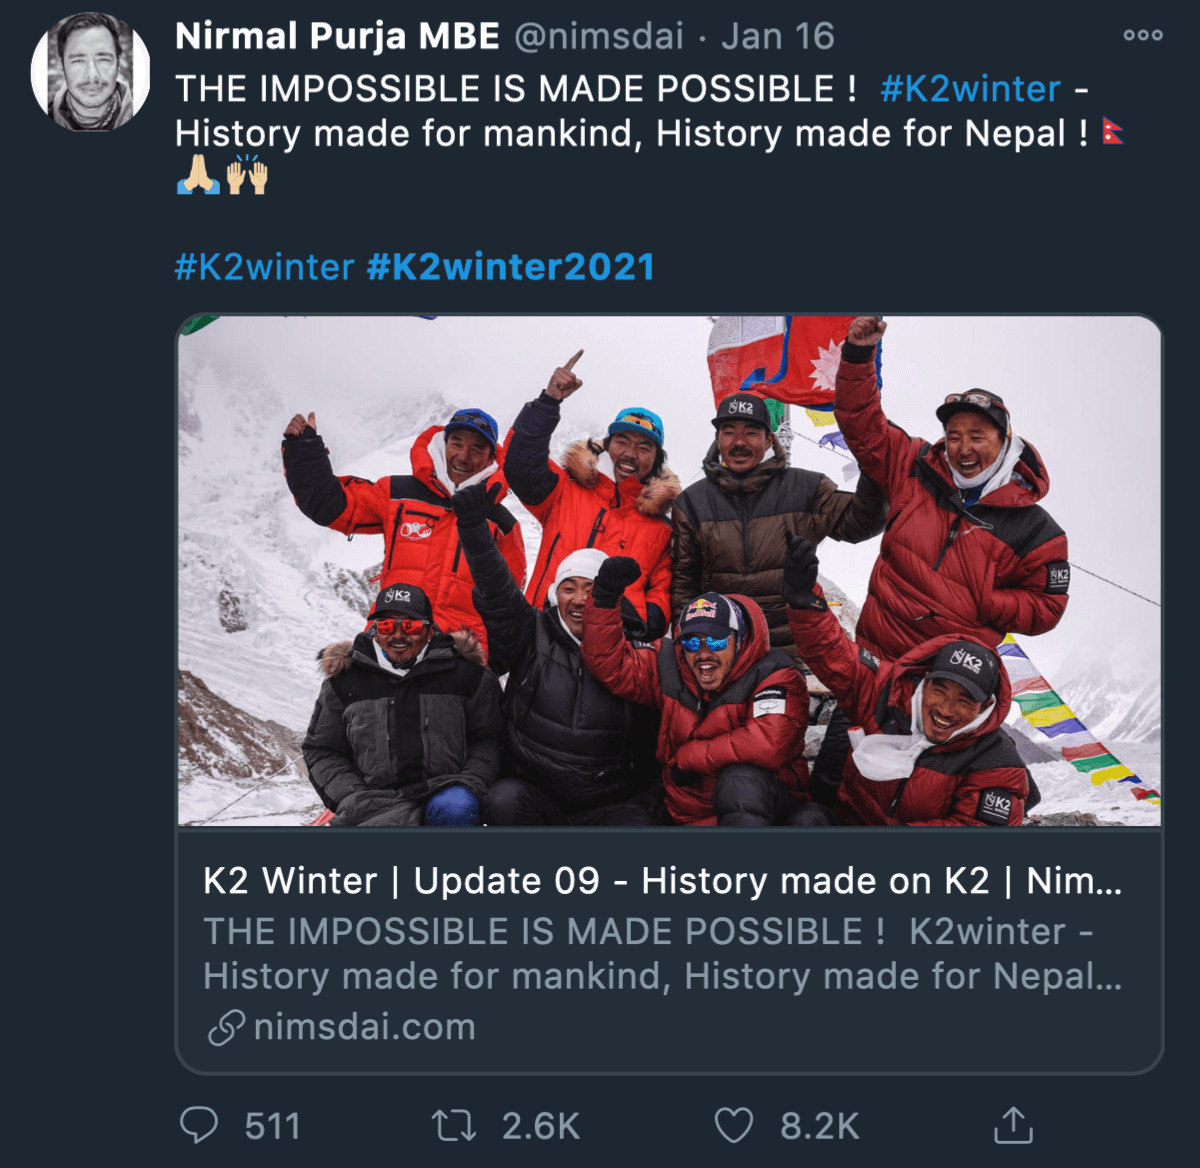 Nepalis on K2 make the impossible possible